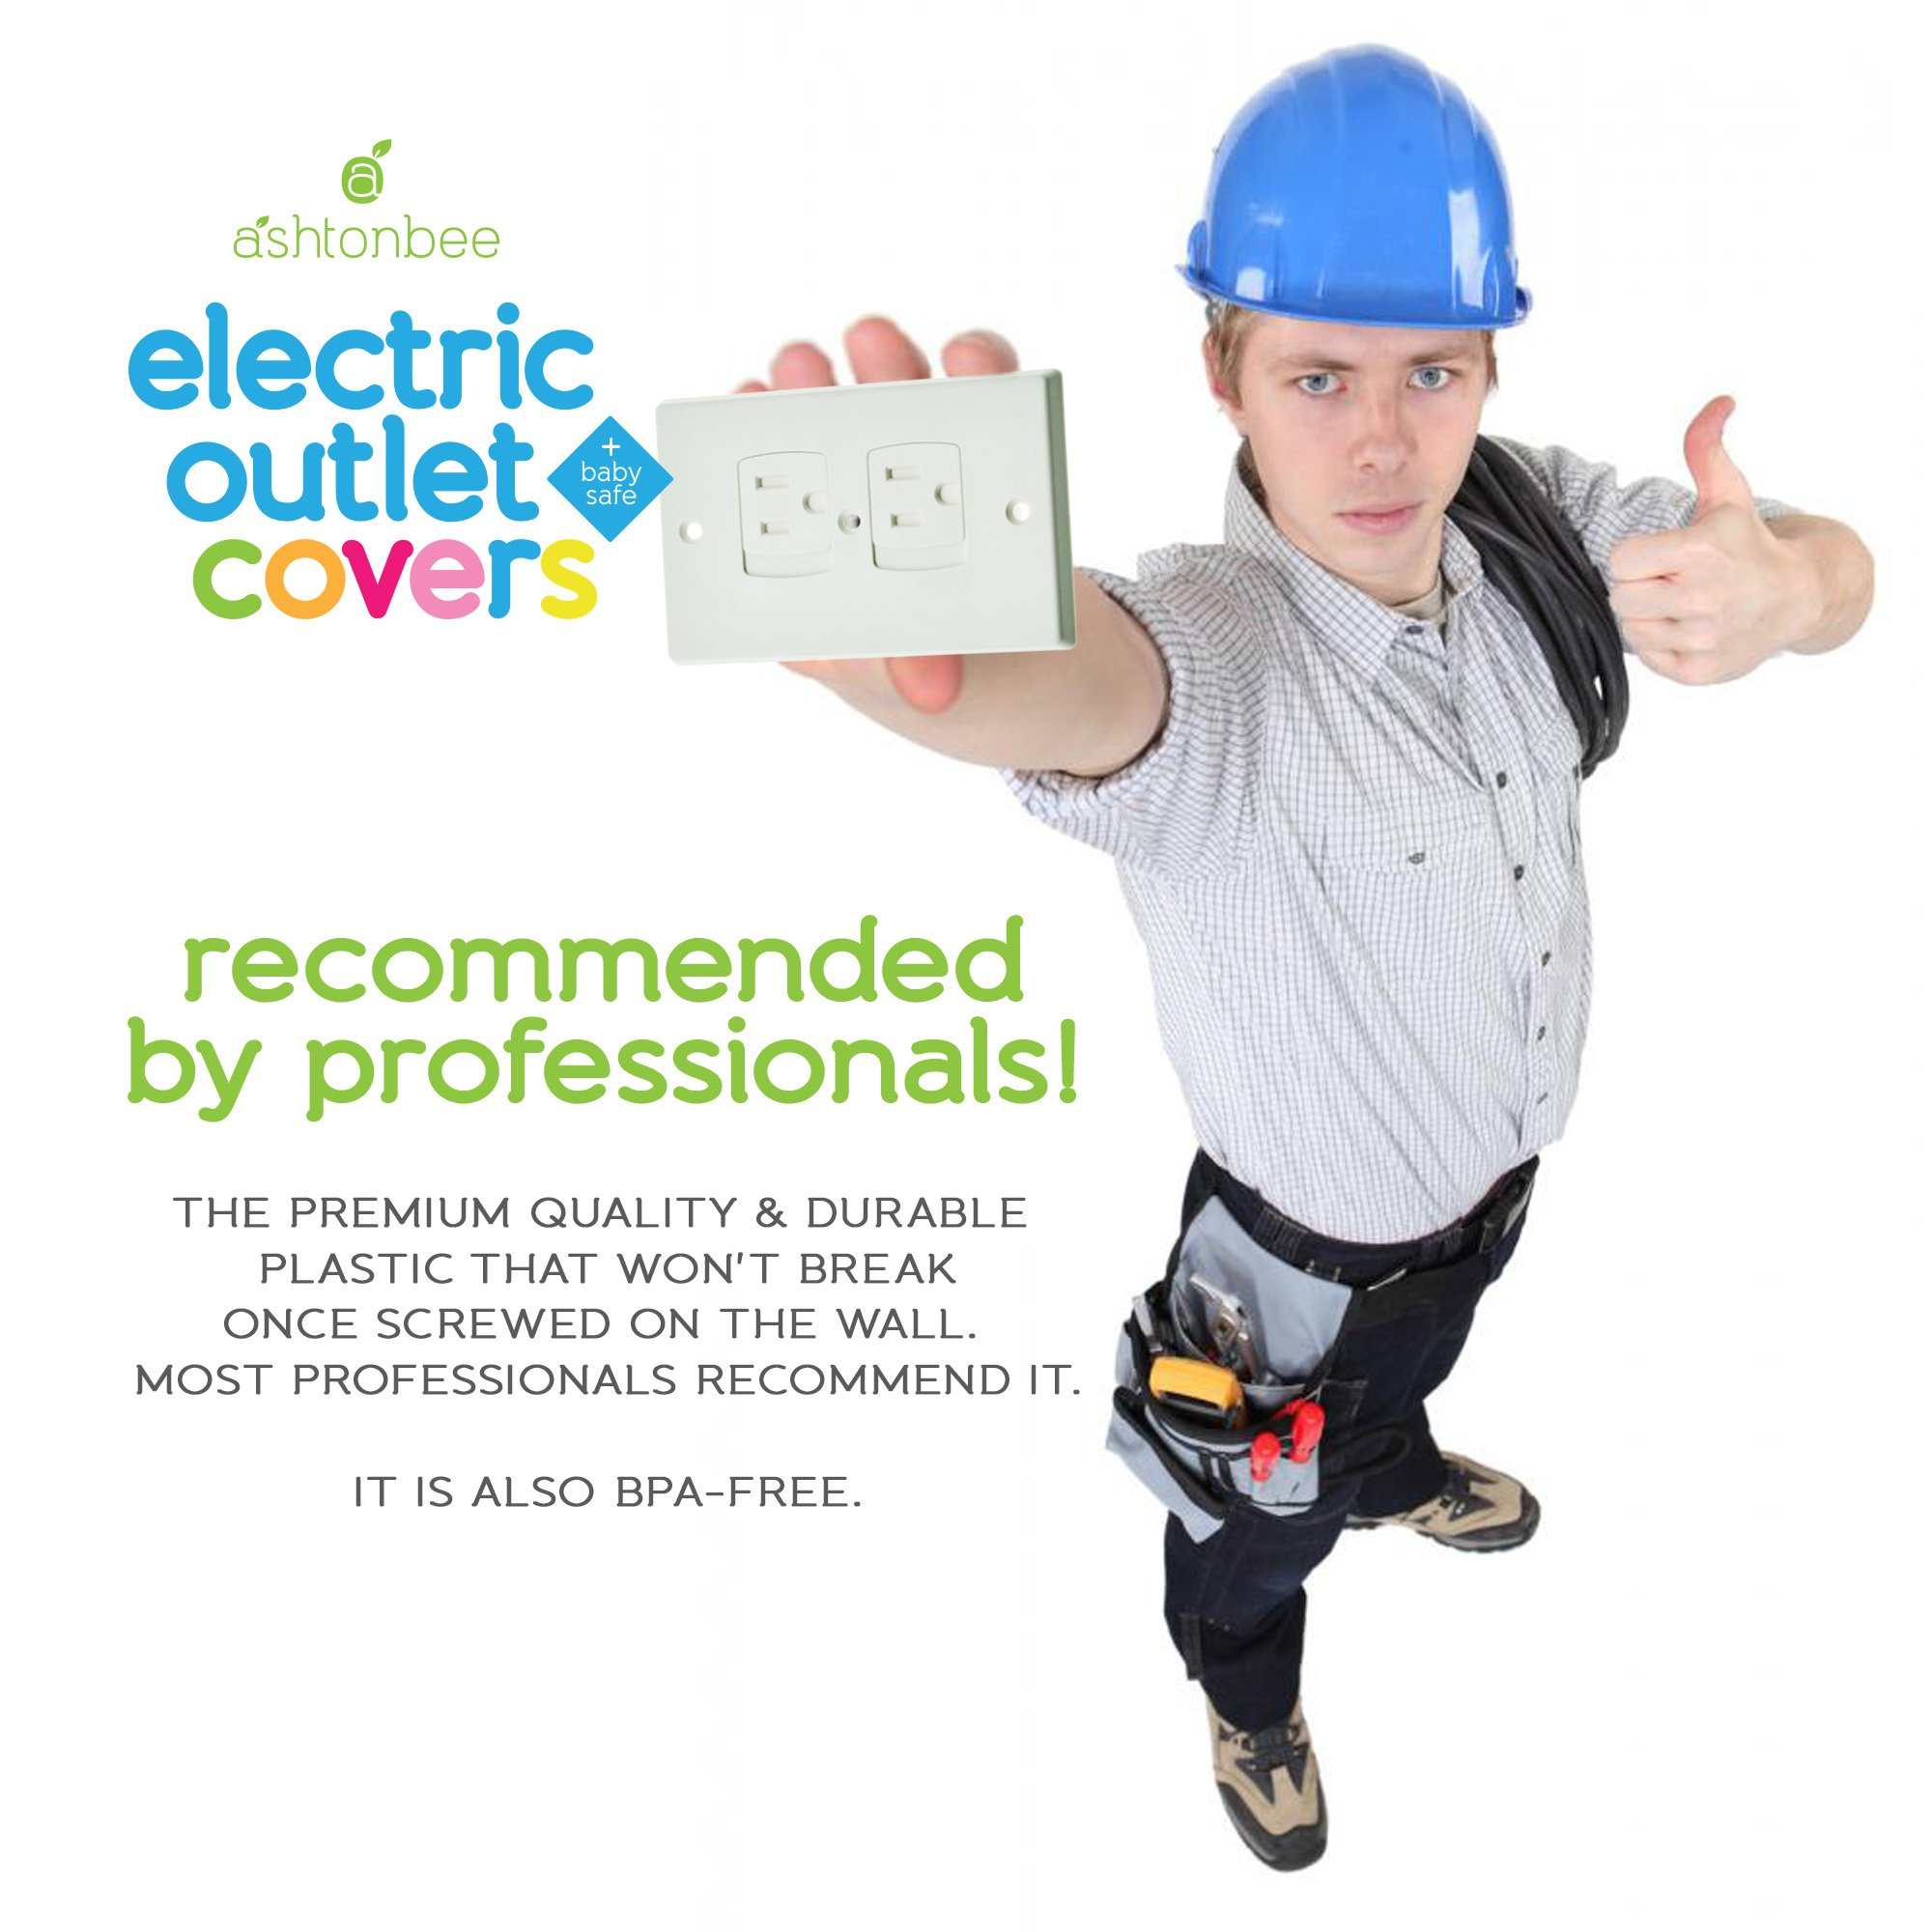 child safety electrical outlet covers for baby proofing